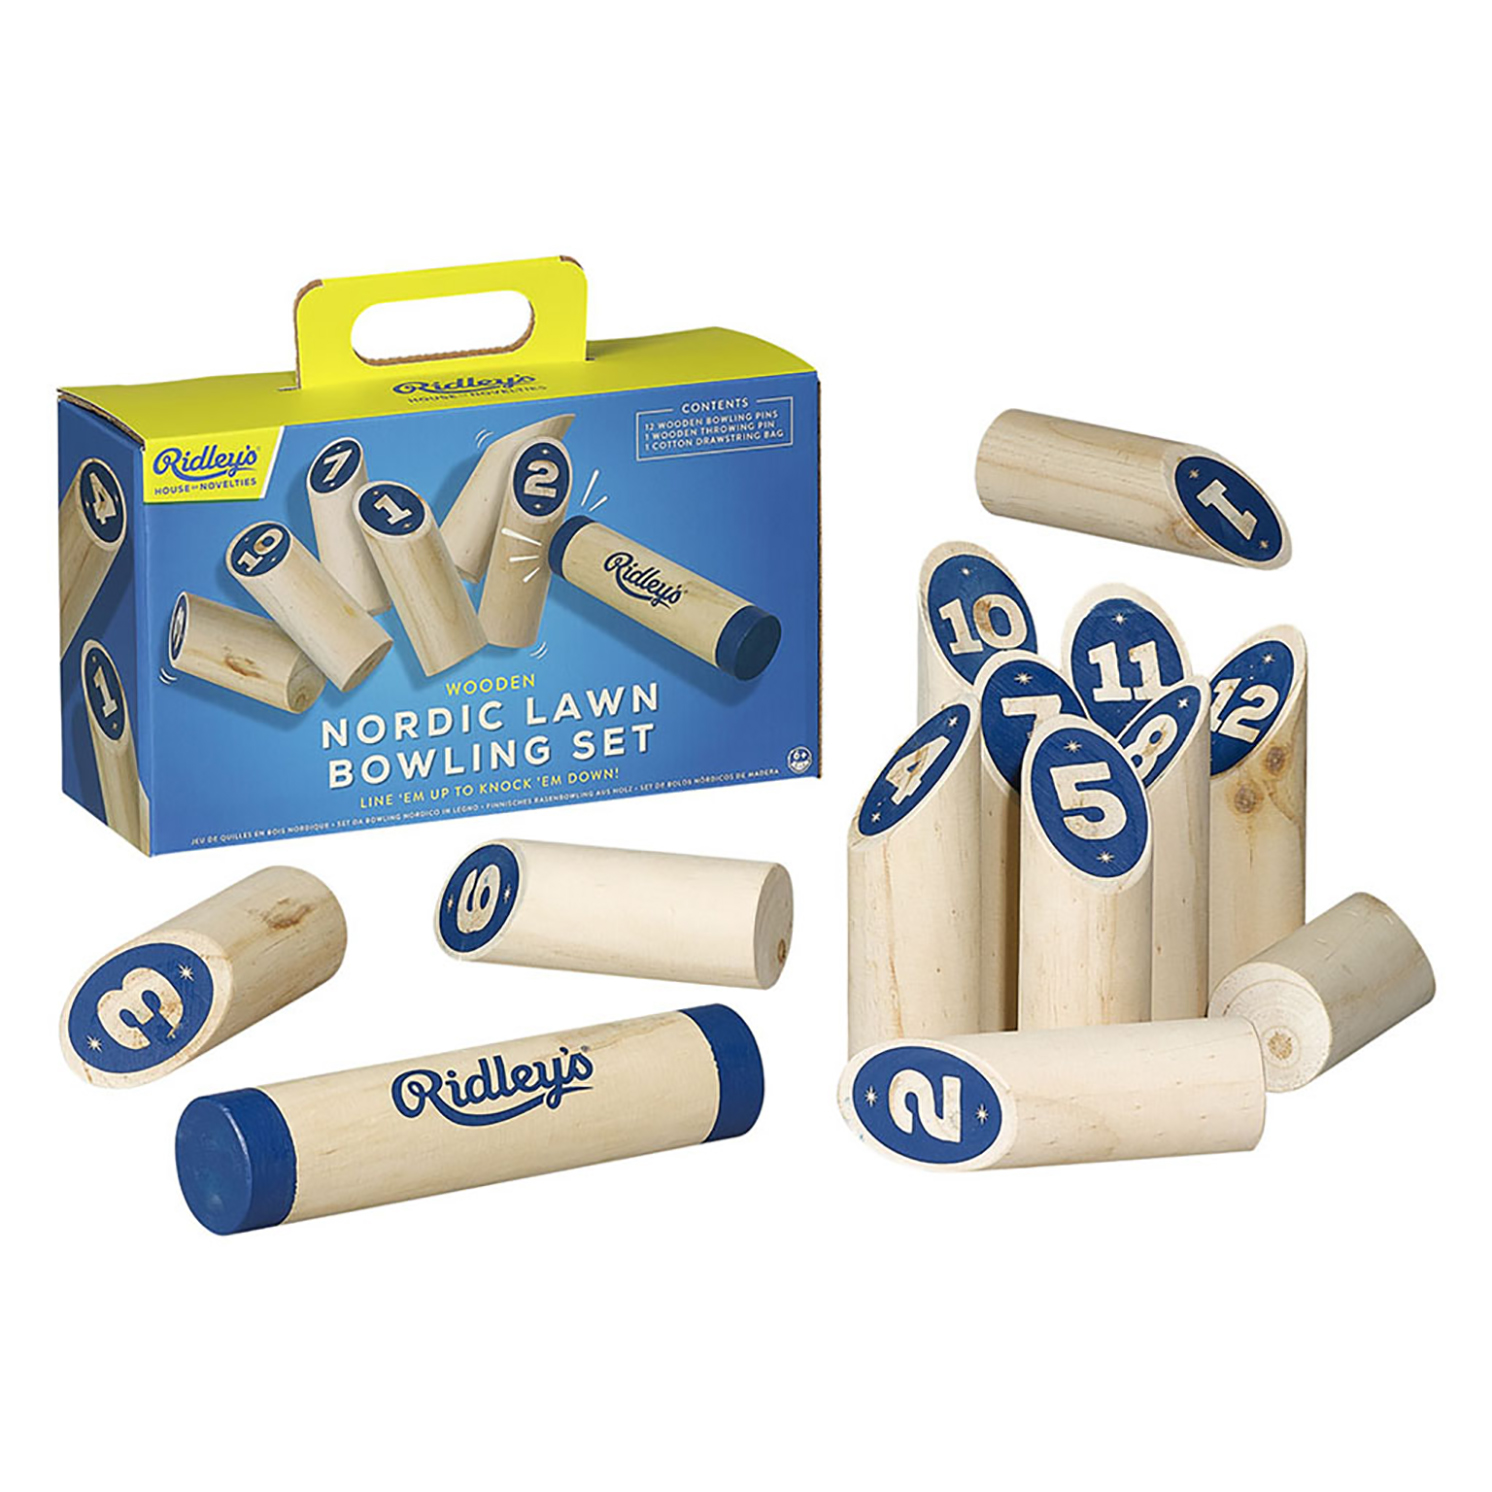 Ridley's Games – Wooden Nordic Lawn Bowling Set in Gift Box